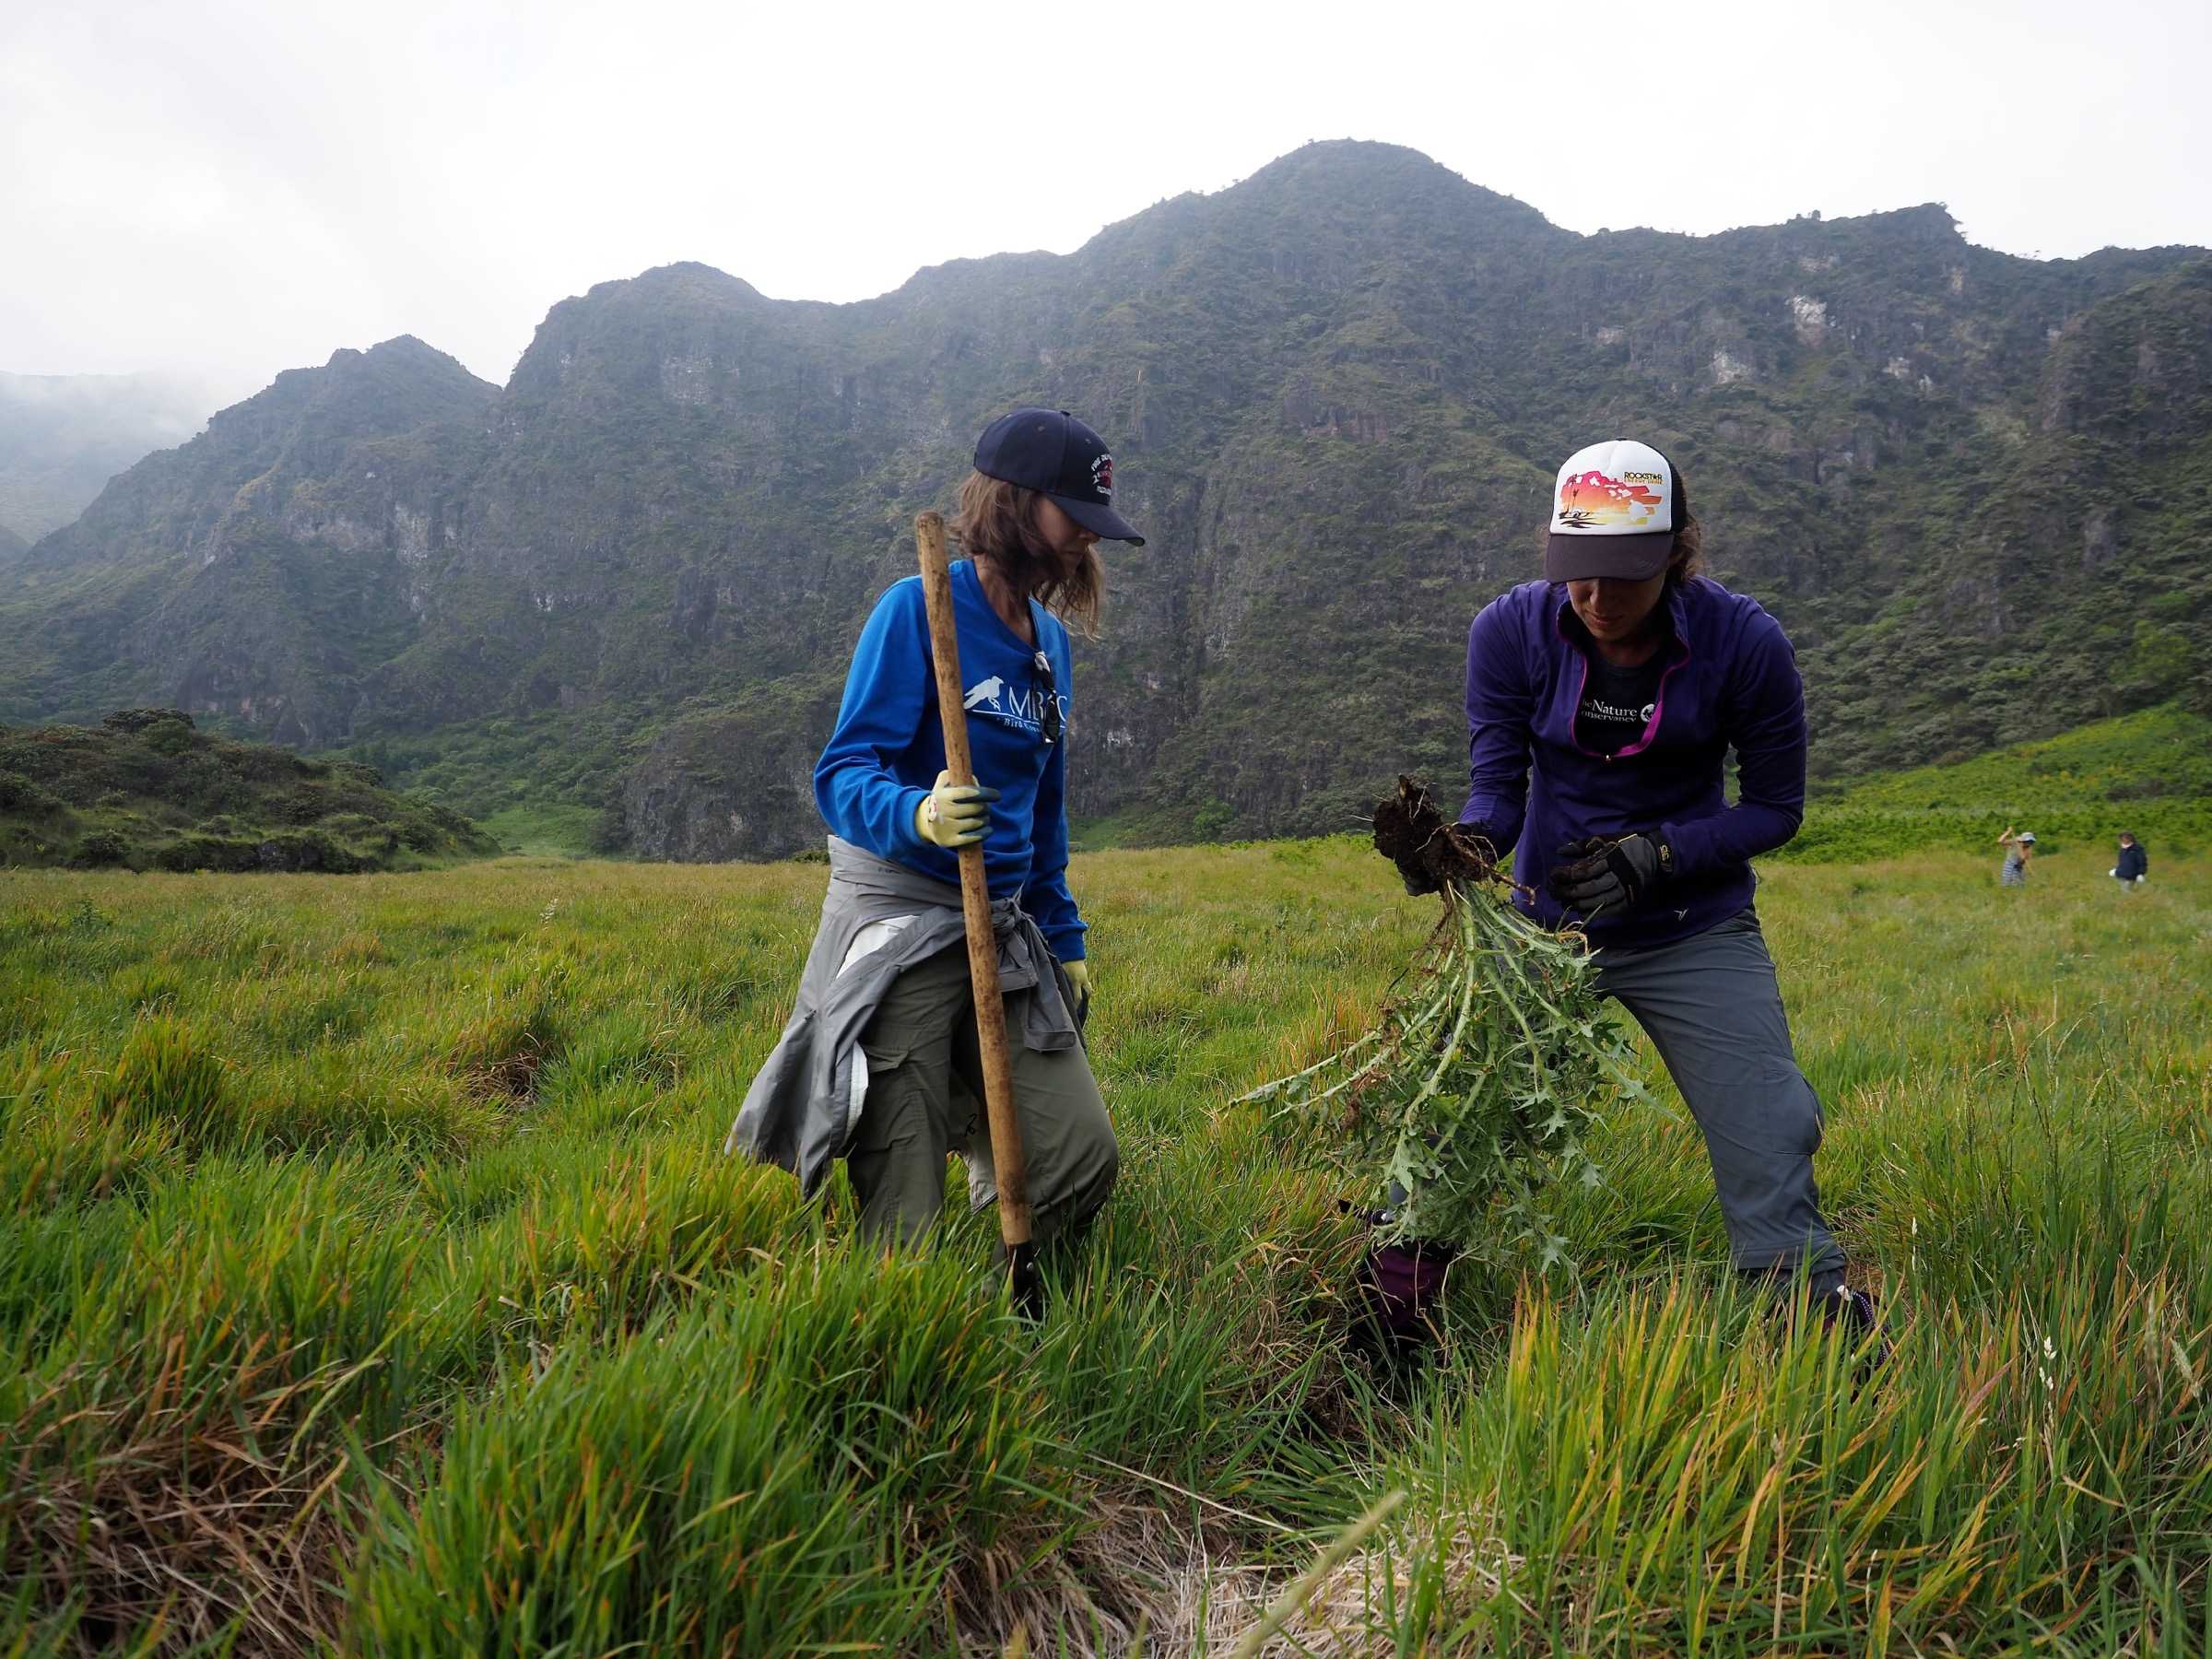 Volunteers pull invasive bull thistles (Cirsium vulgare) from a meadow near the Palikū cabins in Haleakalā National Park. The thistles are widespread on Maui. Photograph by Jeremy Miller